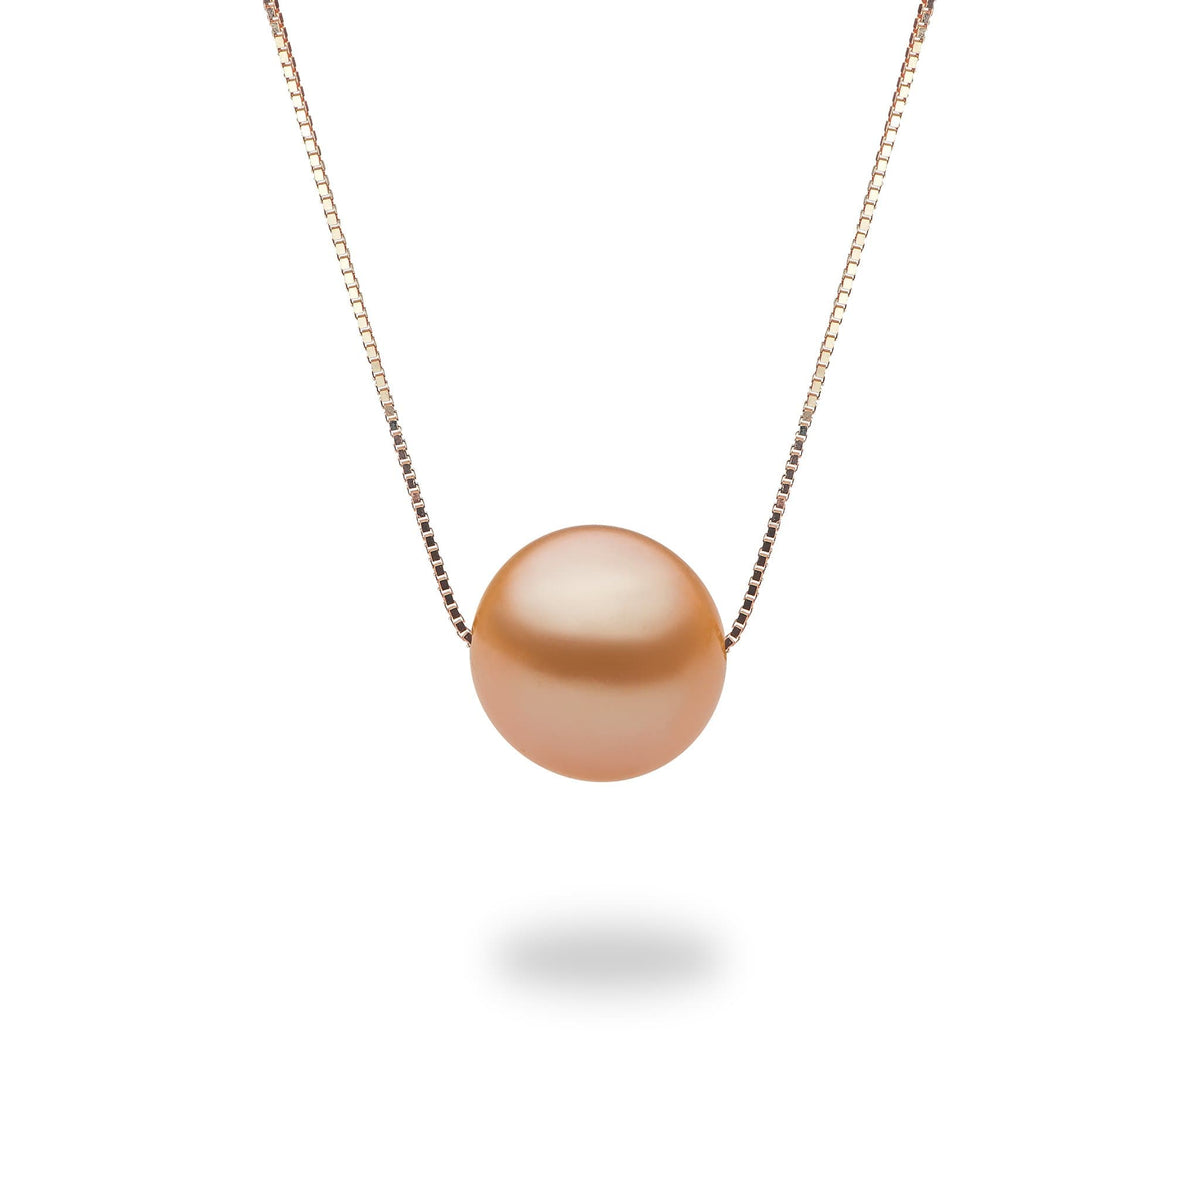 Peach Freshwater Sunset Pearl Adjustable Necklace in 14K Rose Gold (9-10mm) - Maui Divers Jewelry